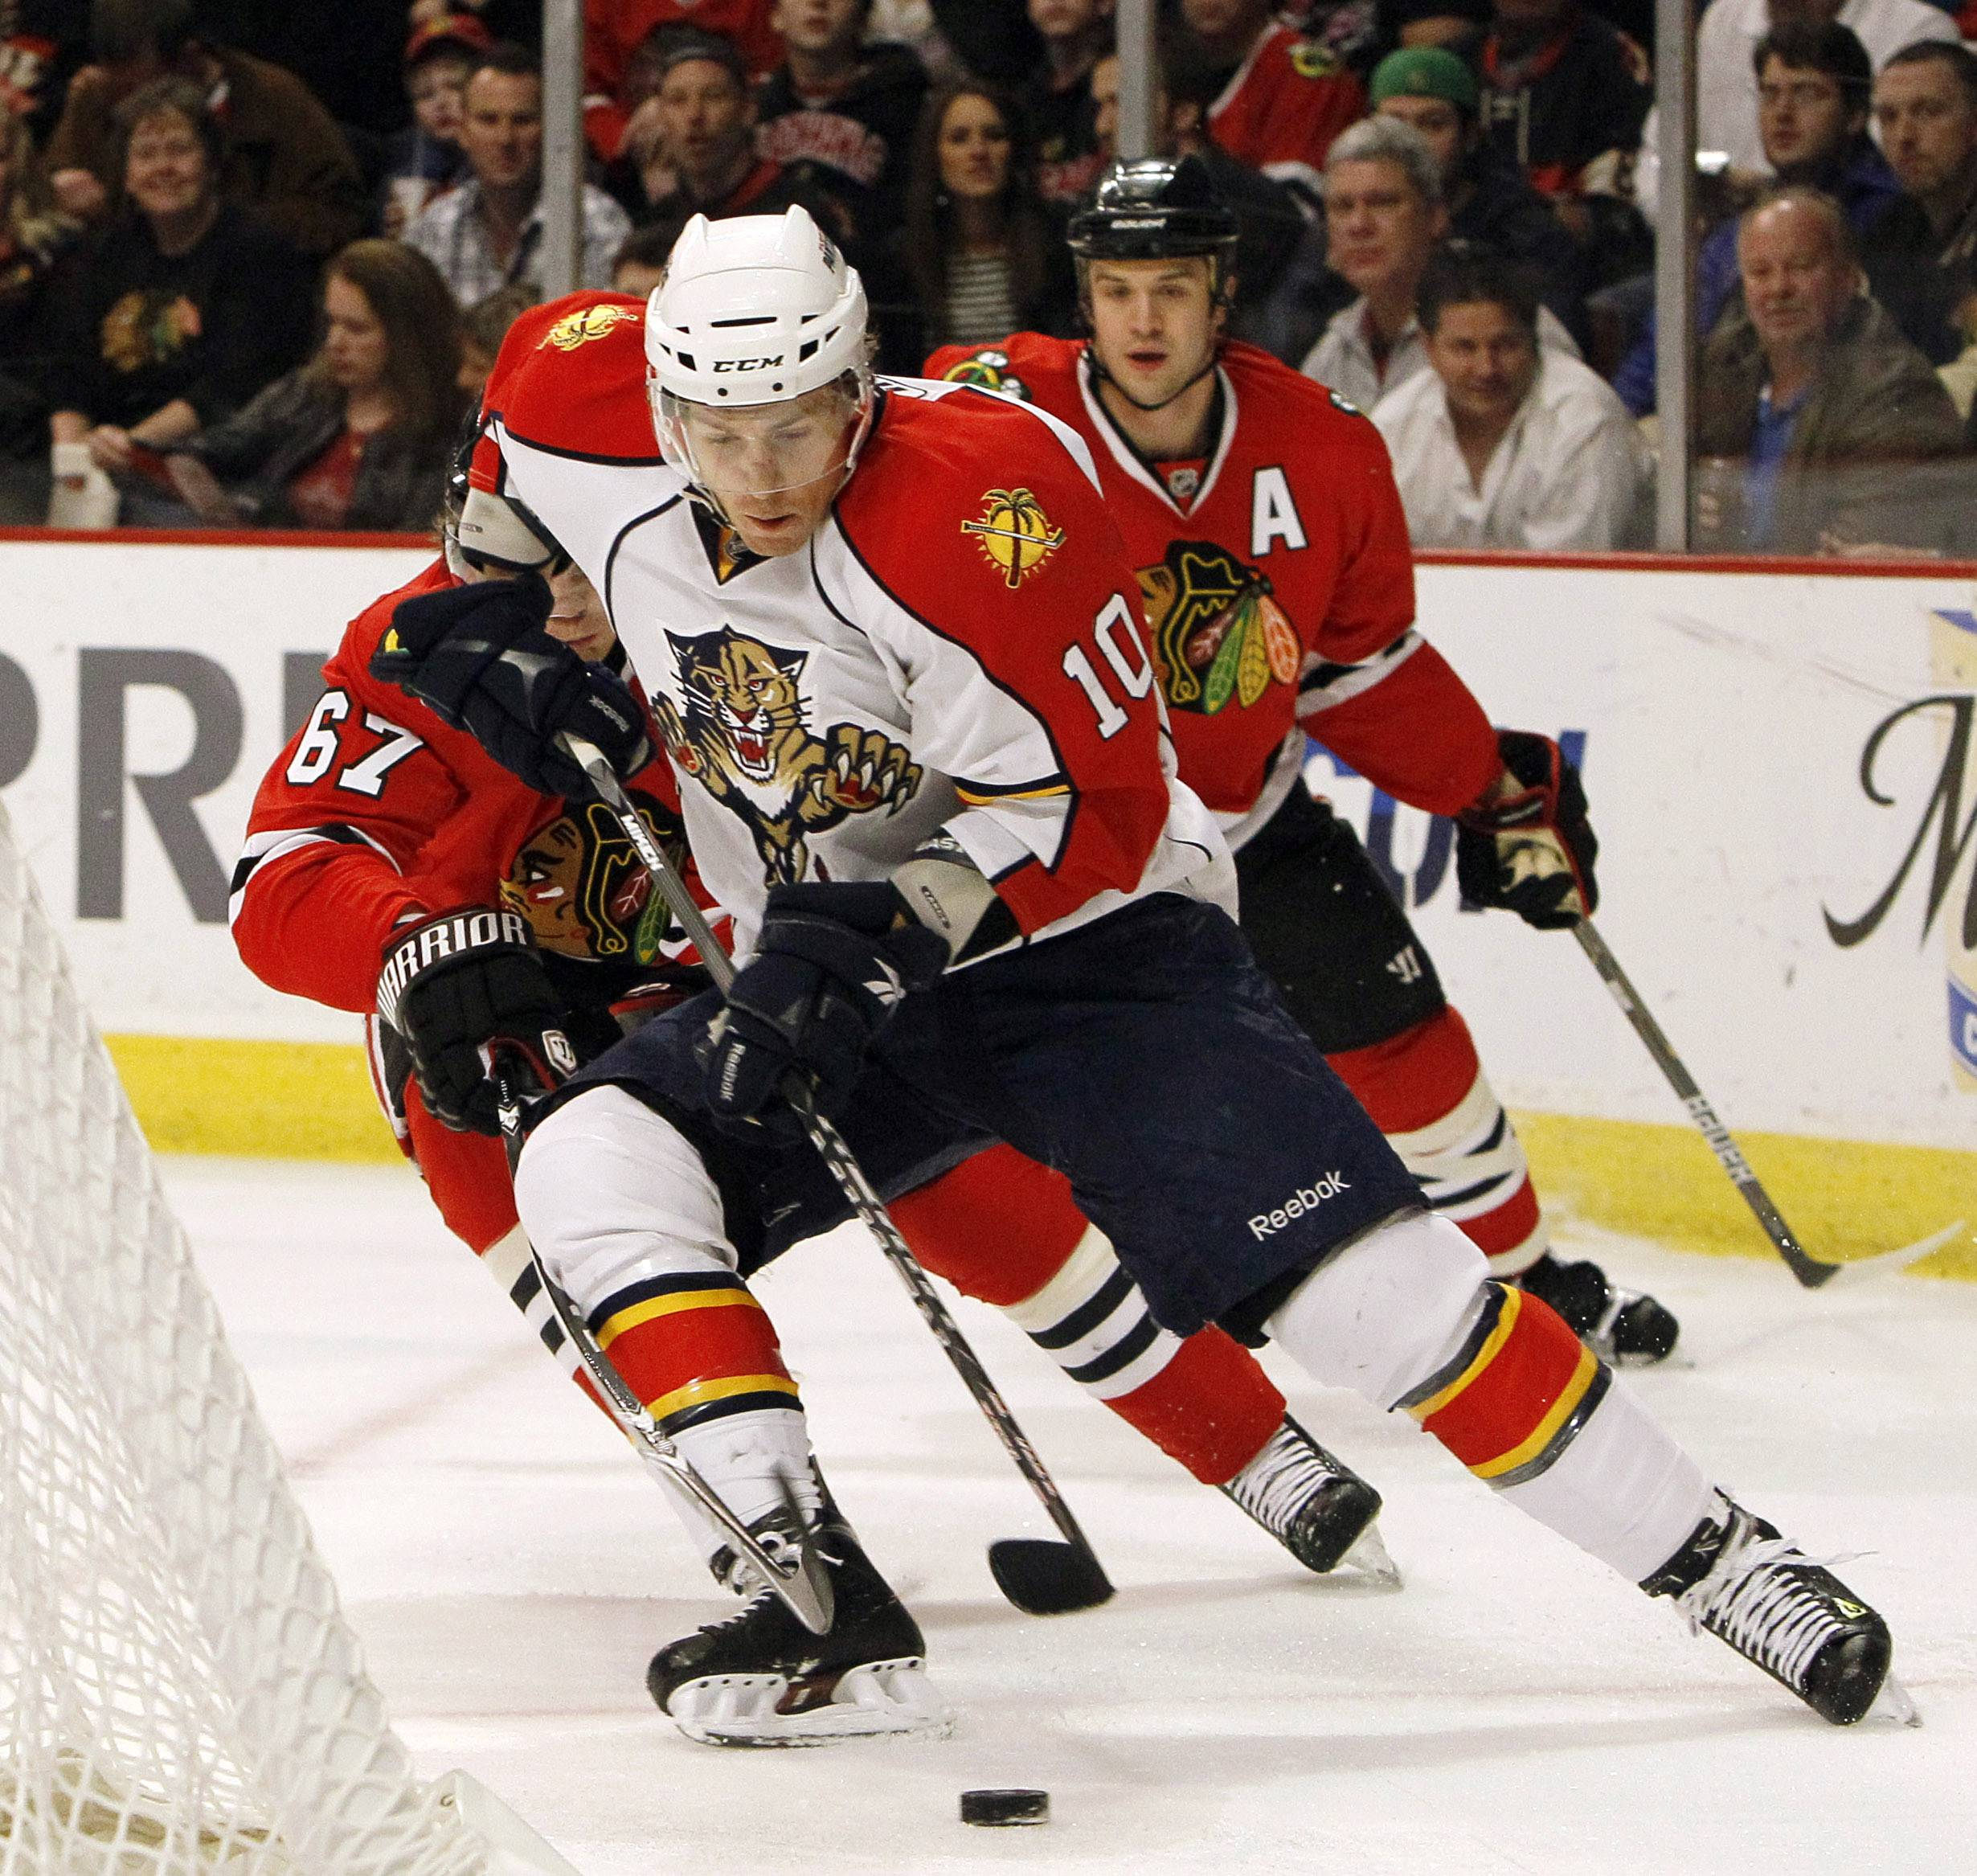 Florida Panthers left wing David Boothskates towards the net as Blackhawks center Michael Frolik, left, defends during the first period Wednesday. Hawks defenseman Brent Seabrook, background, looks on.